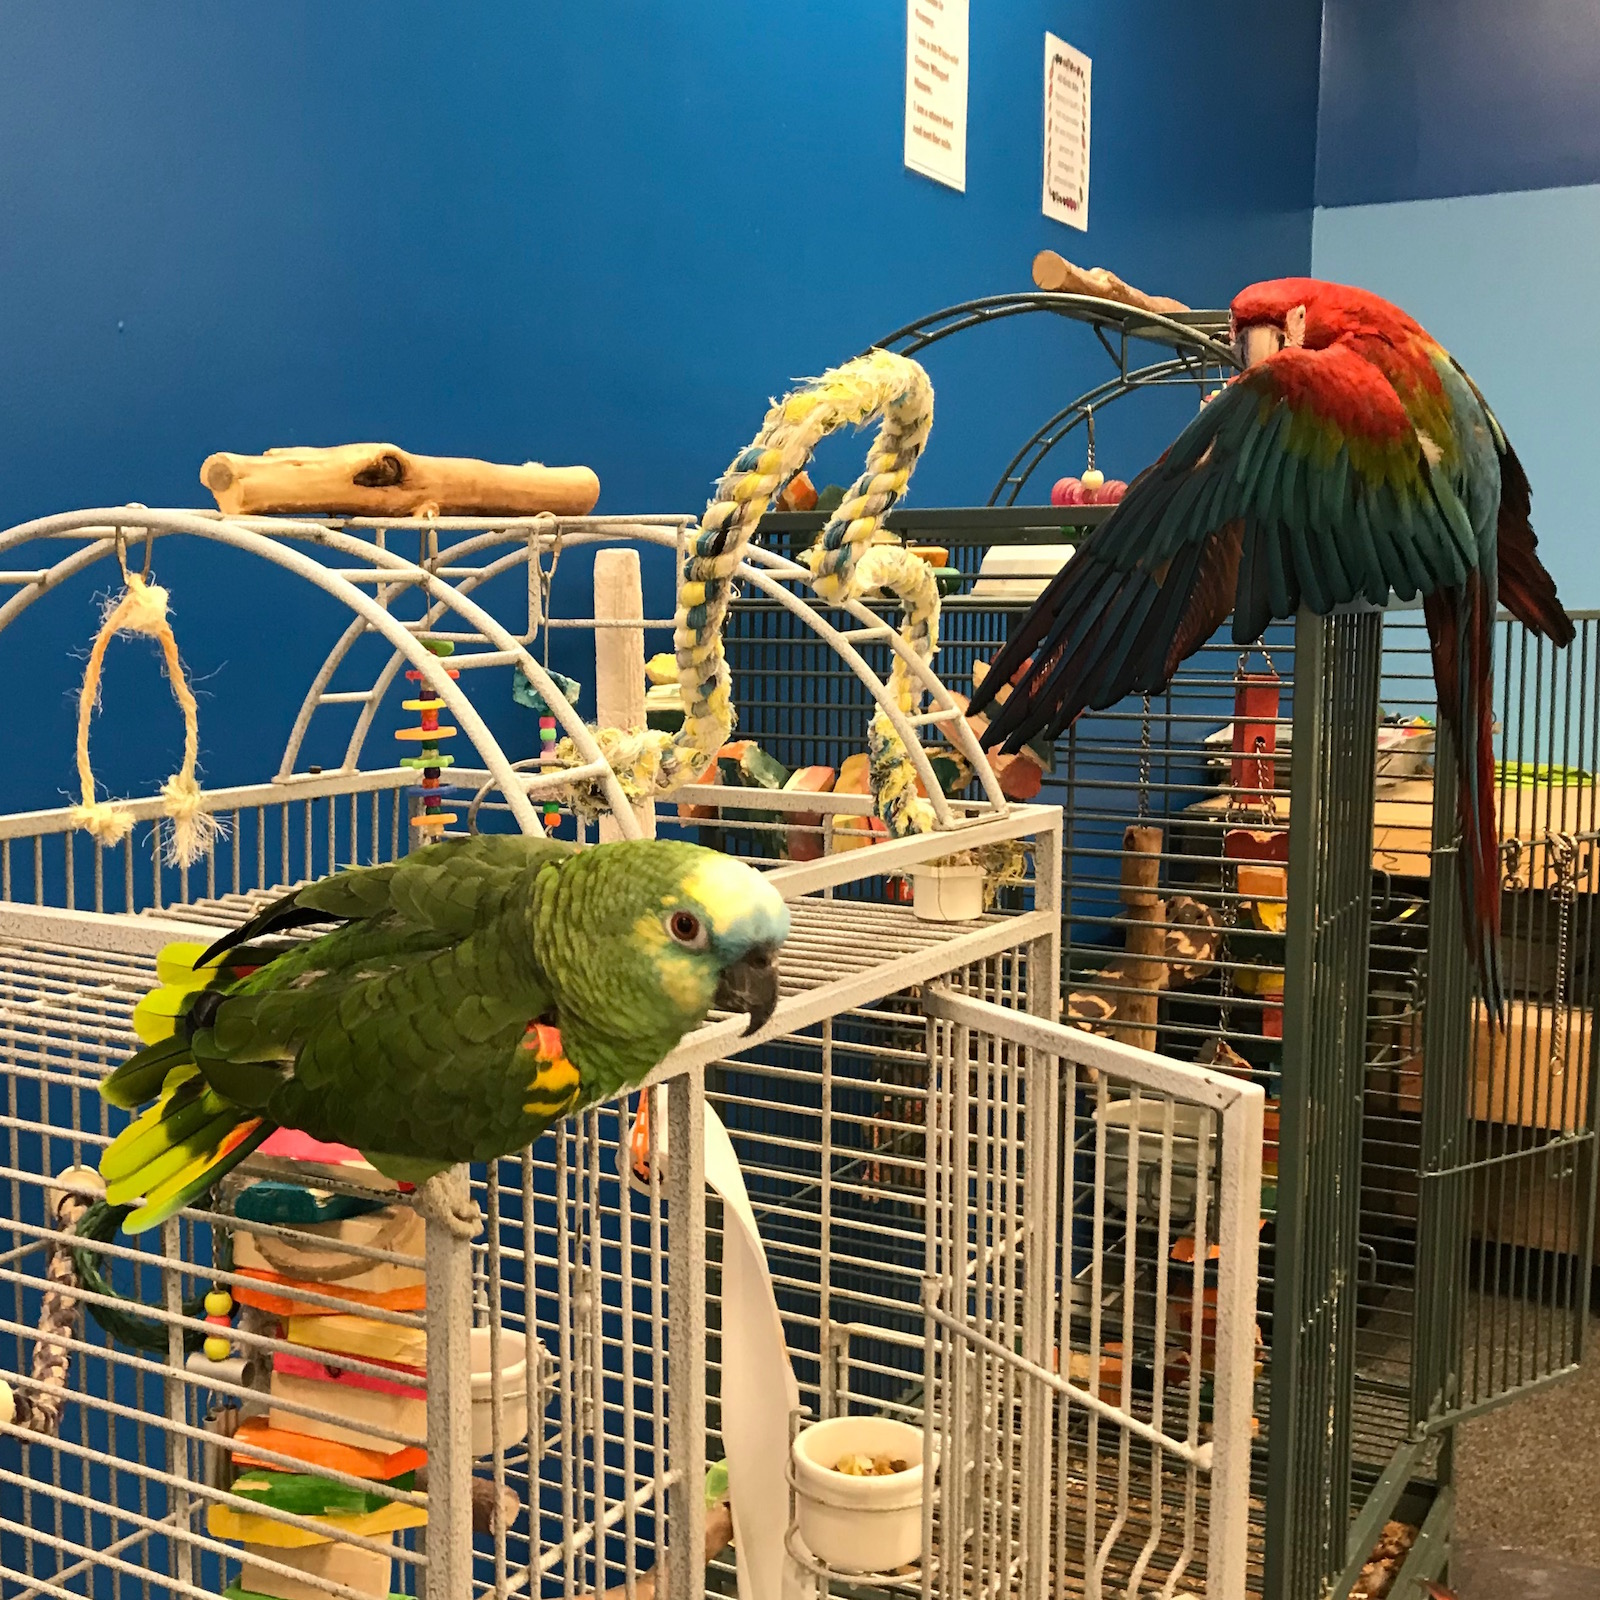 Parrots 'n Stuff - LD reveals her background with birds (and her bird voice) for the podcast.